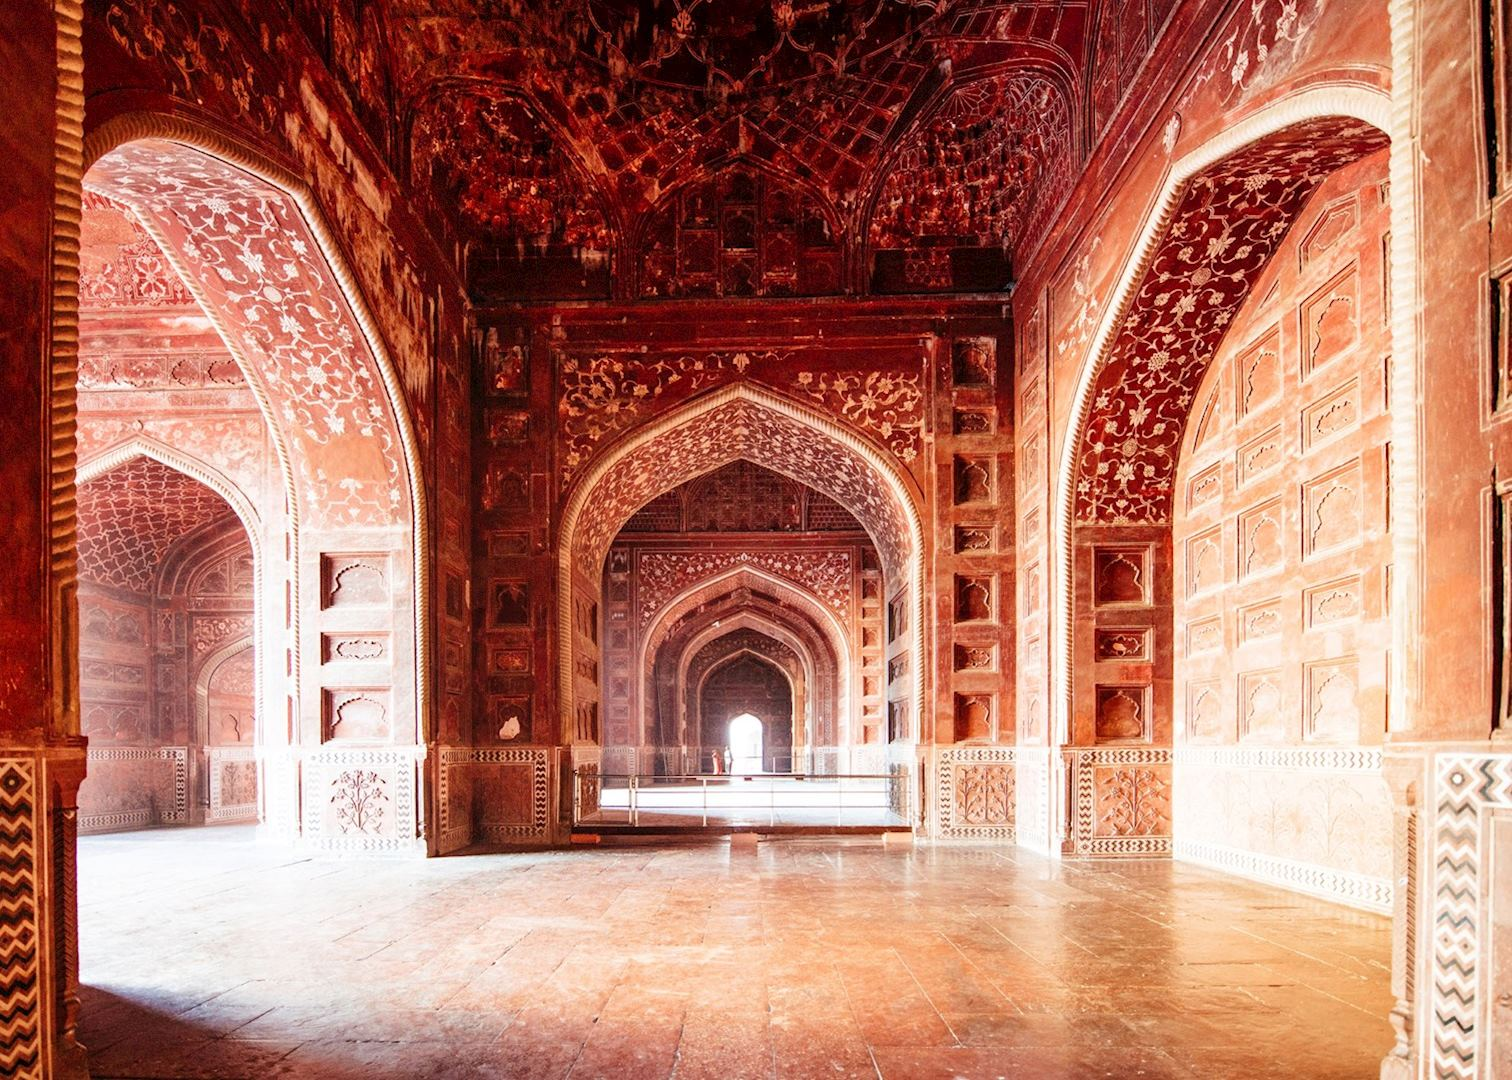 Visit Agra on a trip to India Audley Travel